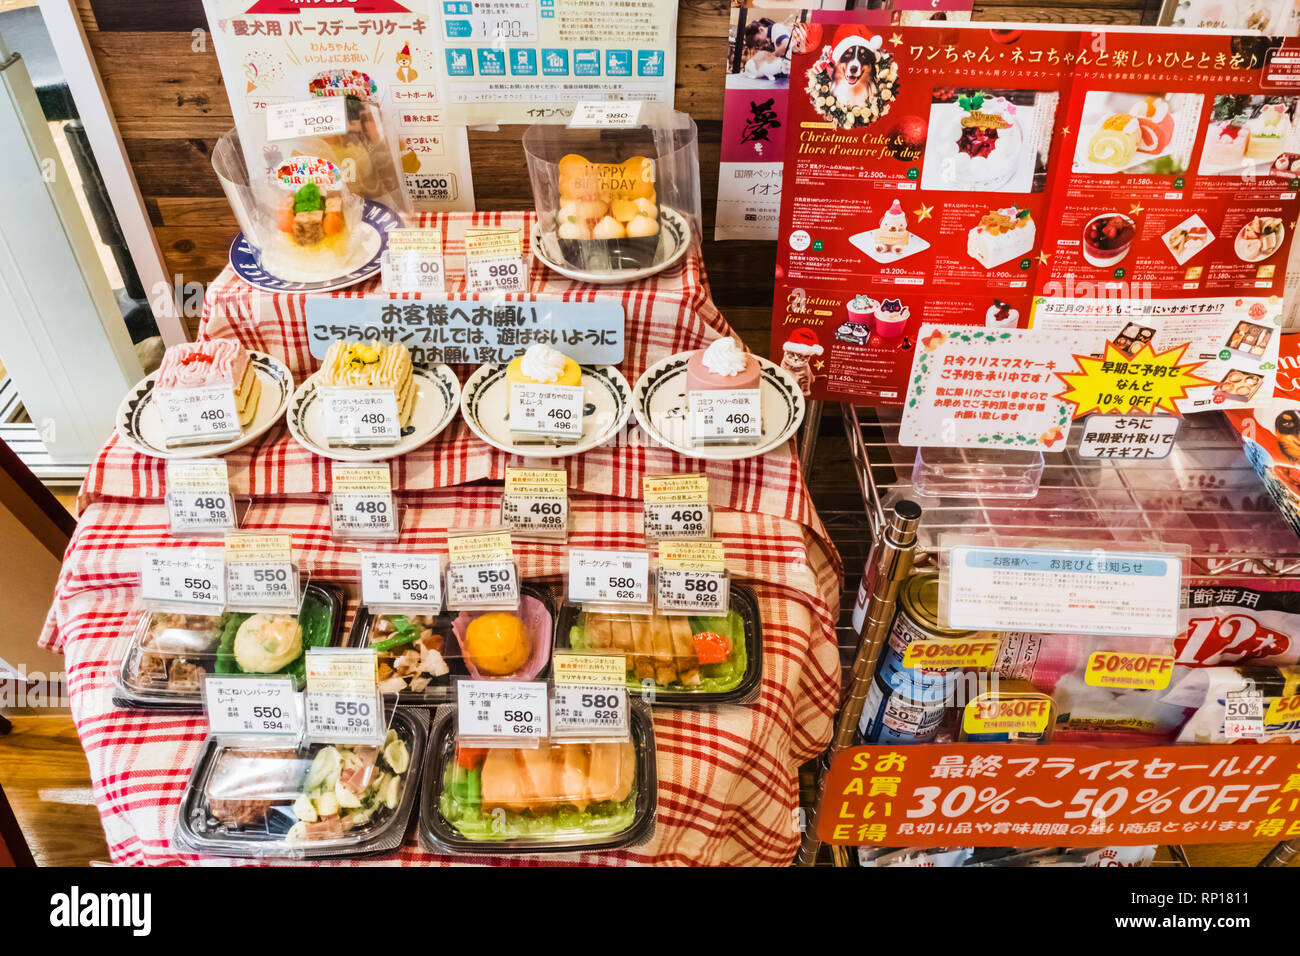 Japan Honshu Tokyo Pet Shop Display Of Birthday And Christmas Gifts For Dogs Cats